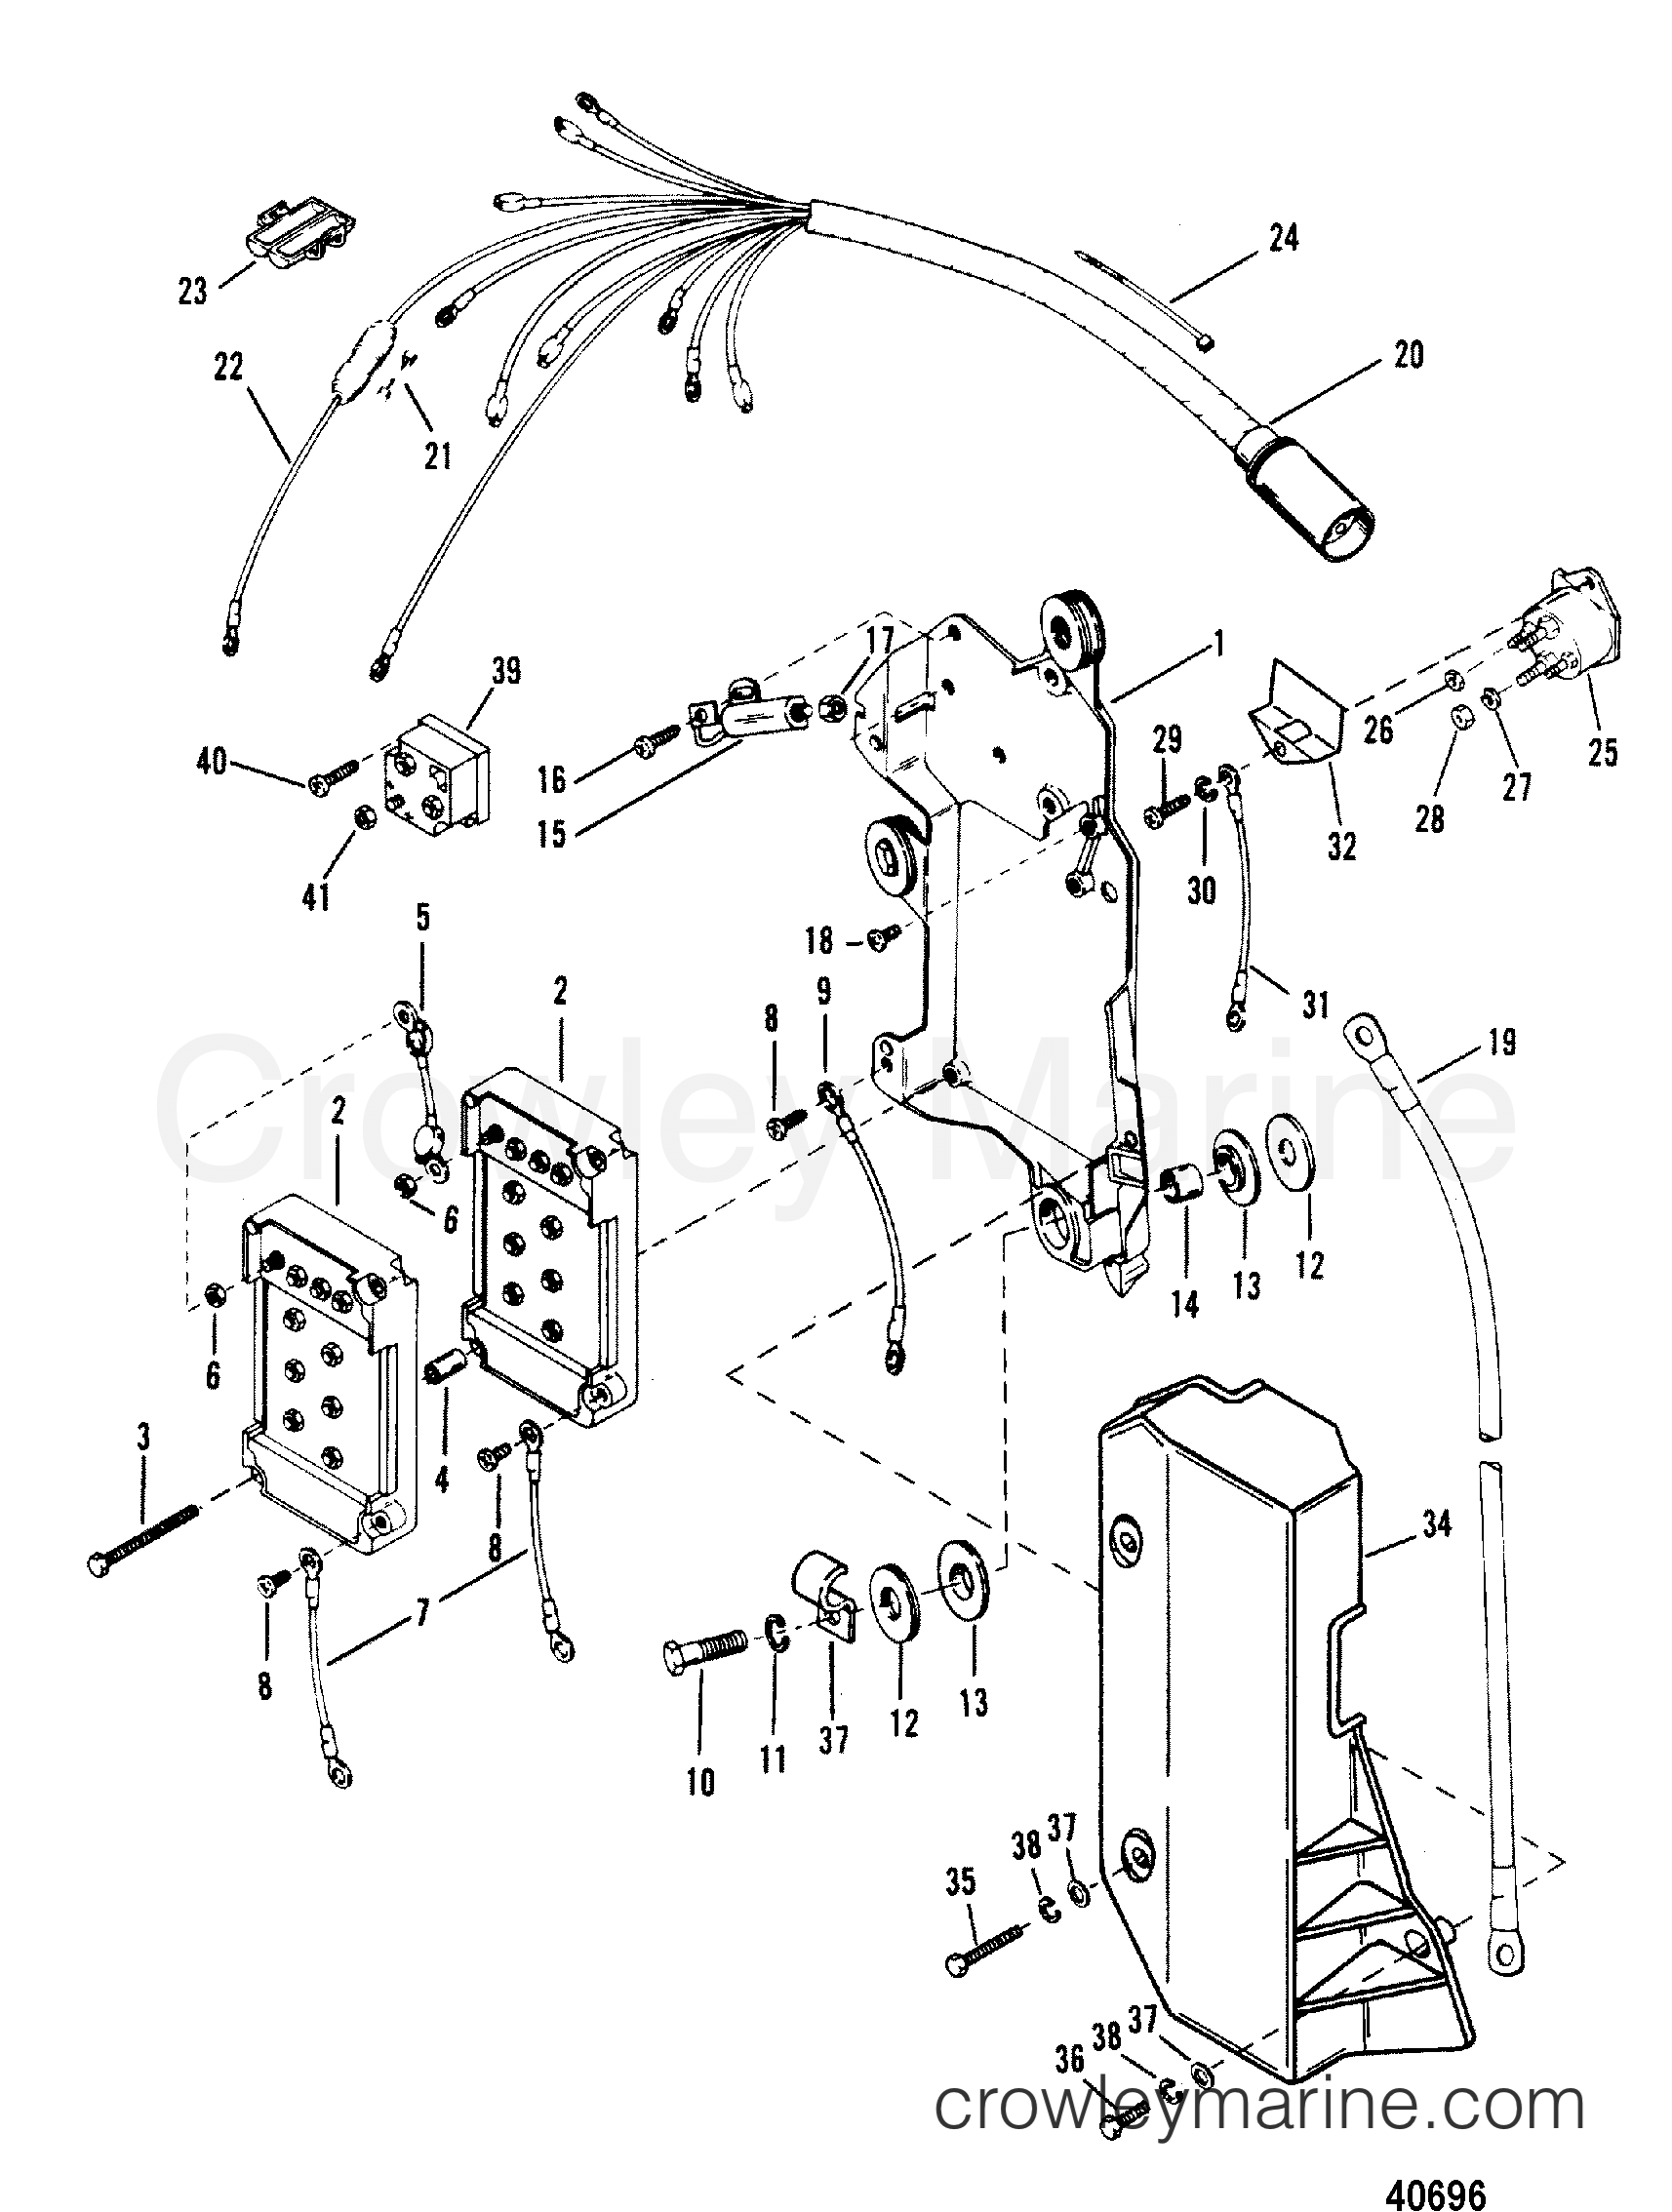 1989 Mariner Outboard Wiring Diagram Expert Schematics 1976 Mercury 200 Engine Harness Starter Solenoid Cxl Schematic